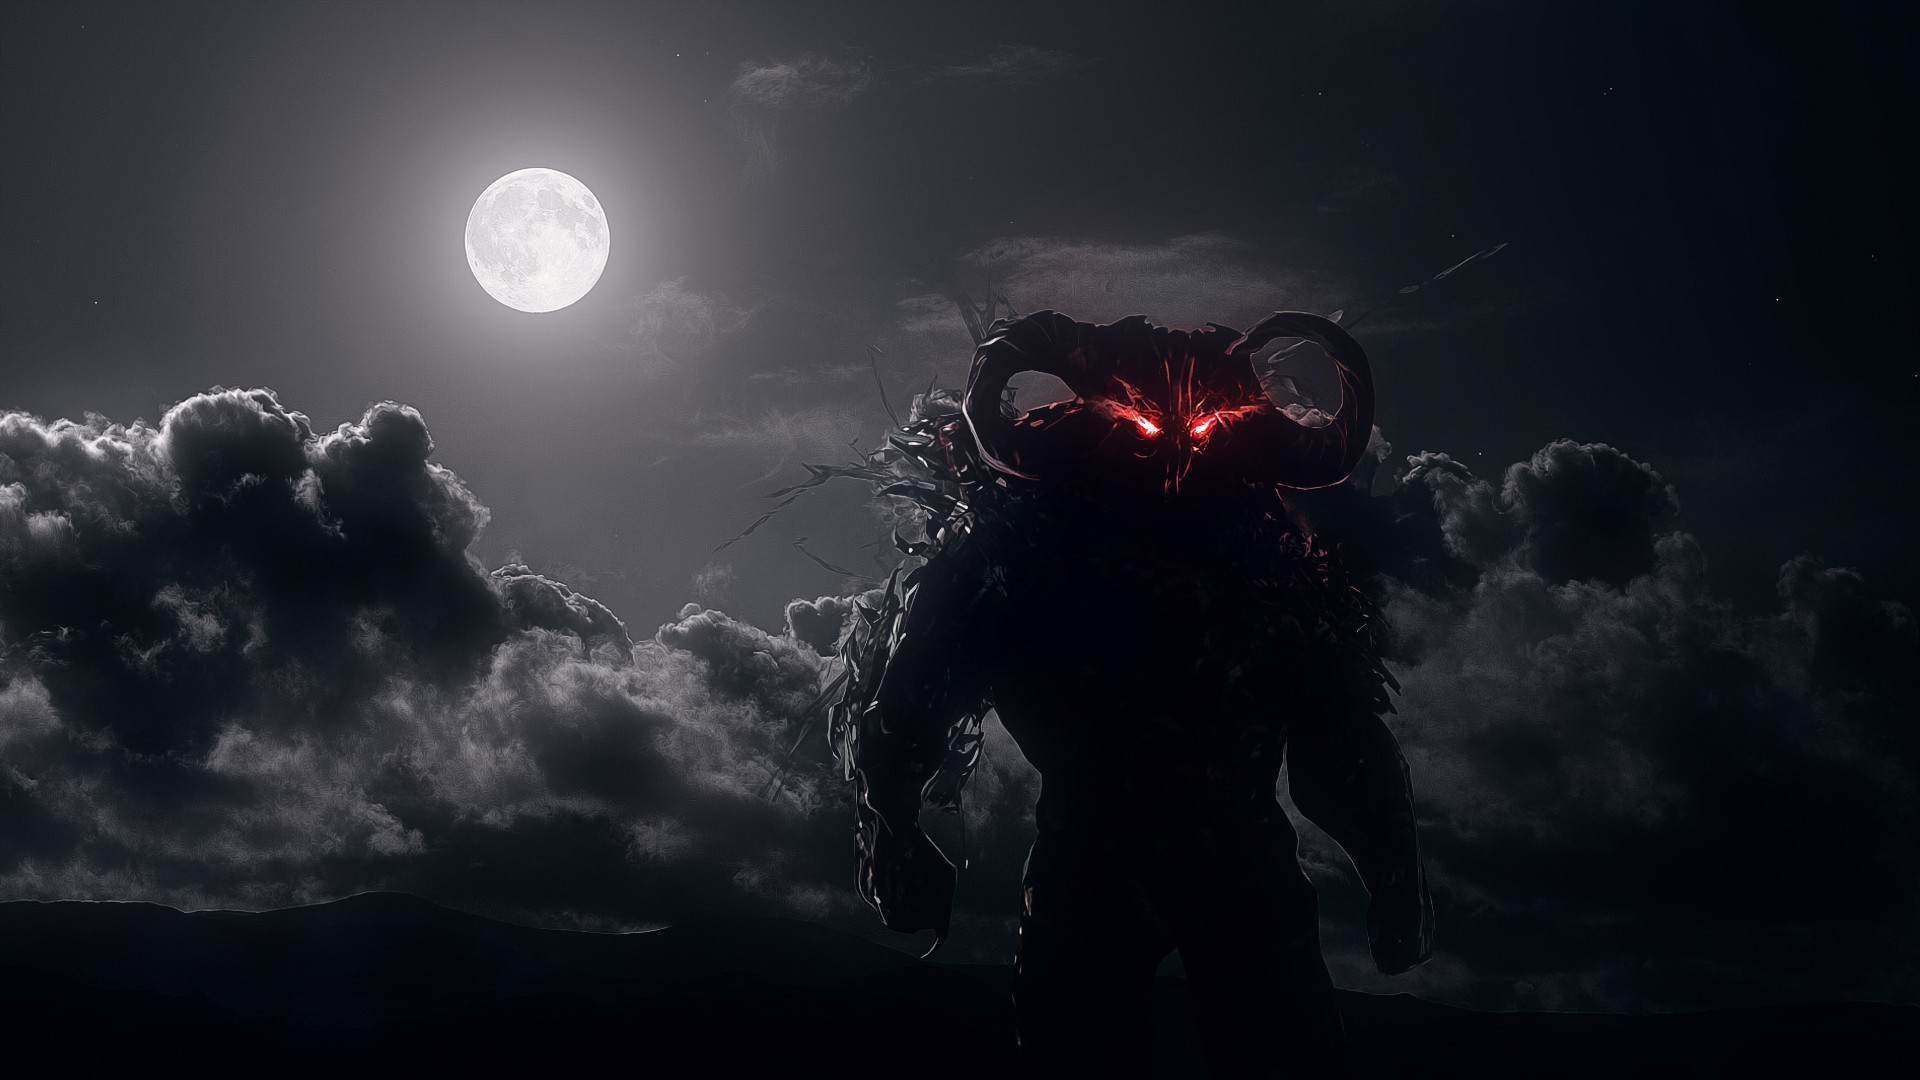 Wampire Moon Wallpaper Desktop 3d Dark Red Moon Dahaka Prince Of Persia Warrior Within